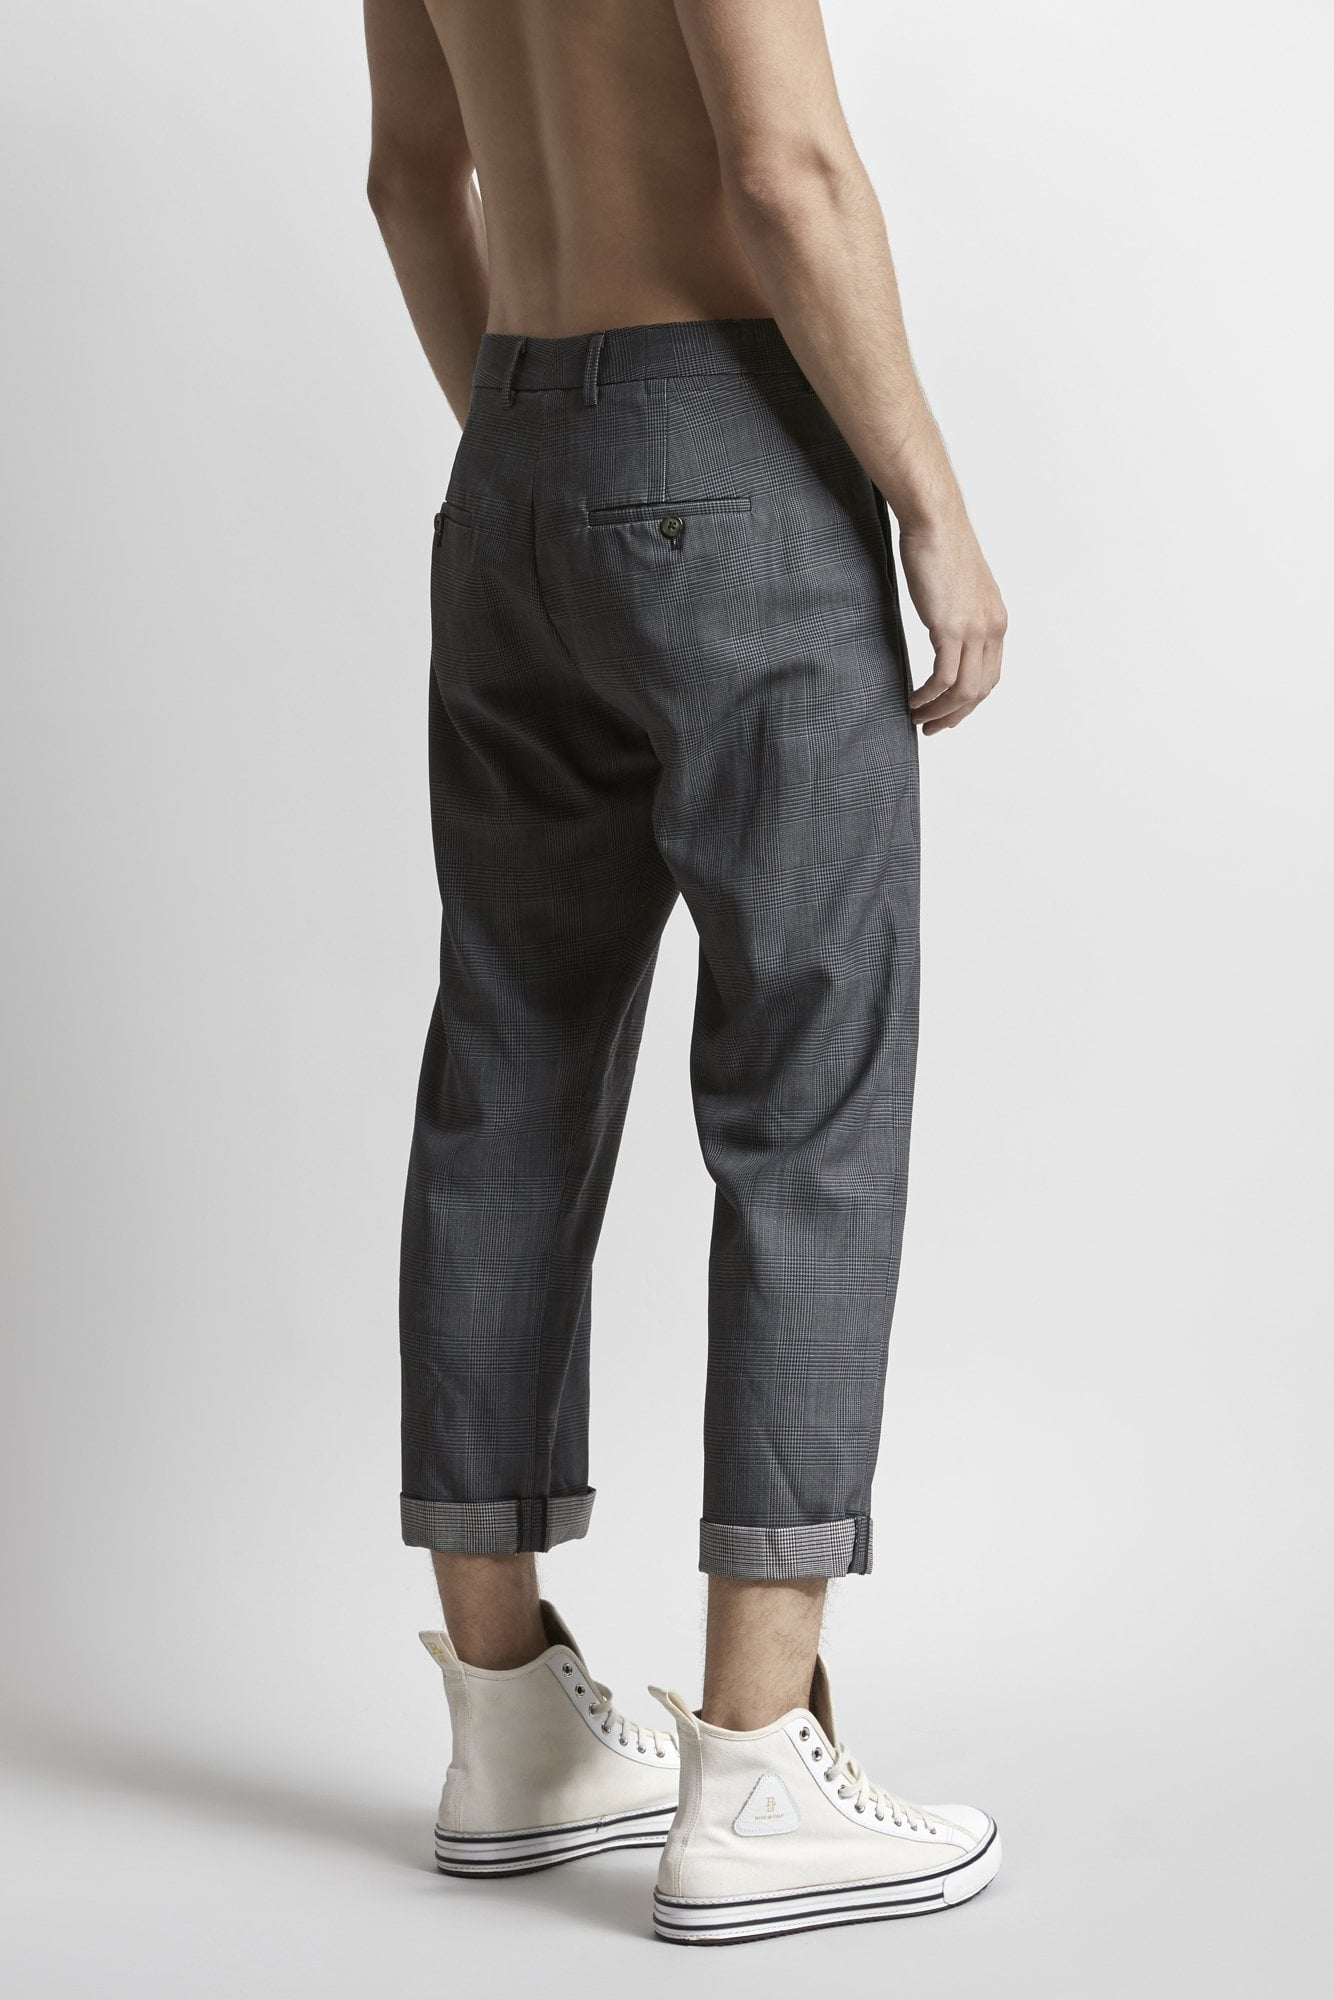 Crossover Trouser- Grey Check